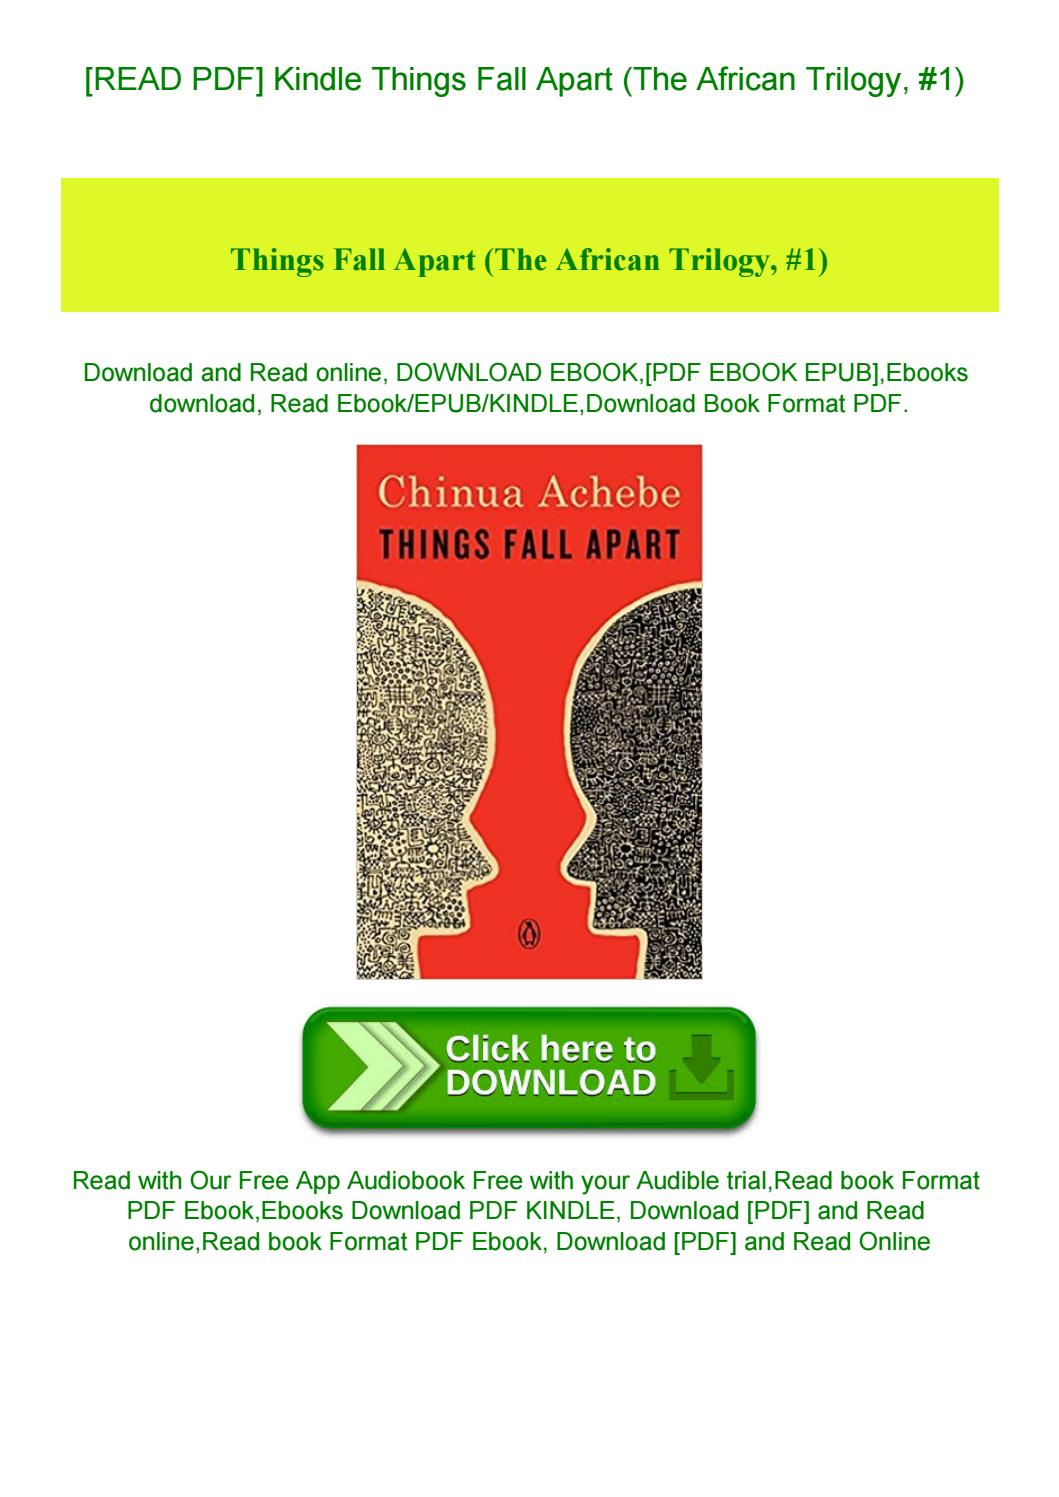 Read Pdf Kindle Things Fall Apart The African Trilogy 1 Read By Shirley Rodrigueze Issuu